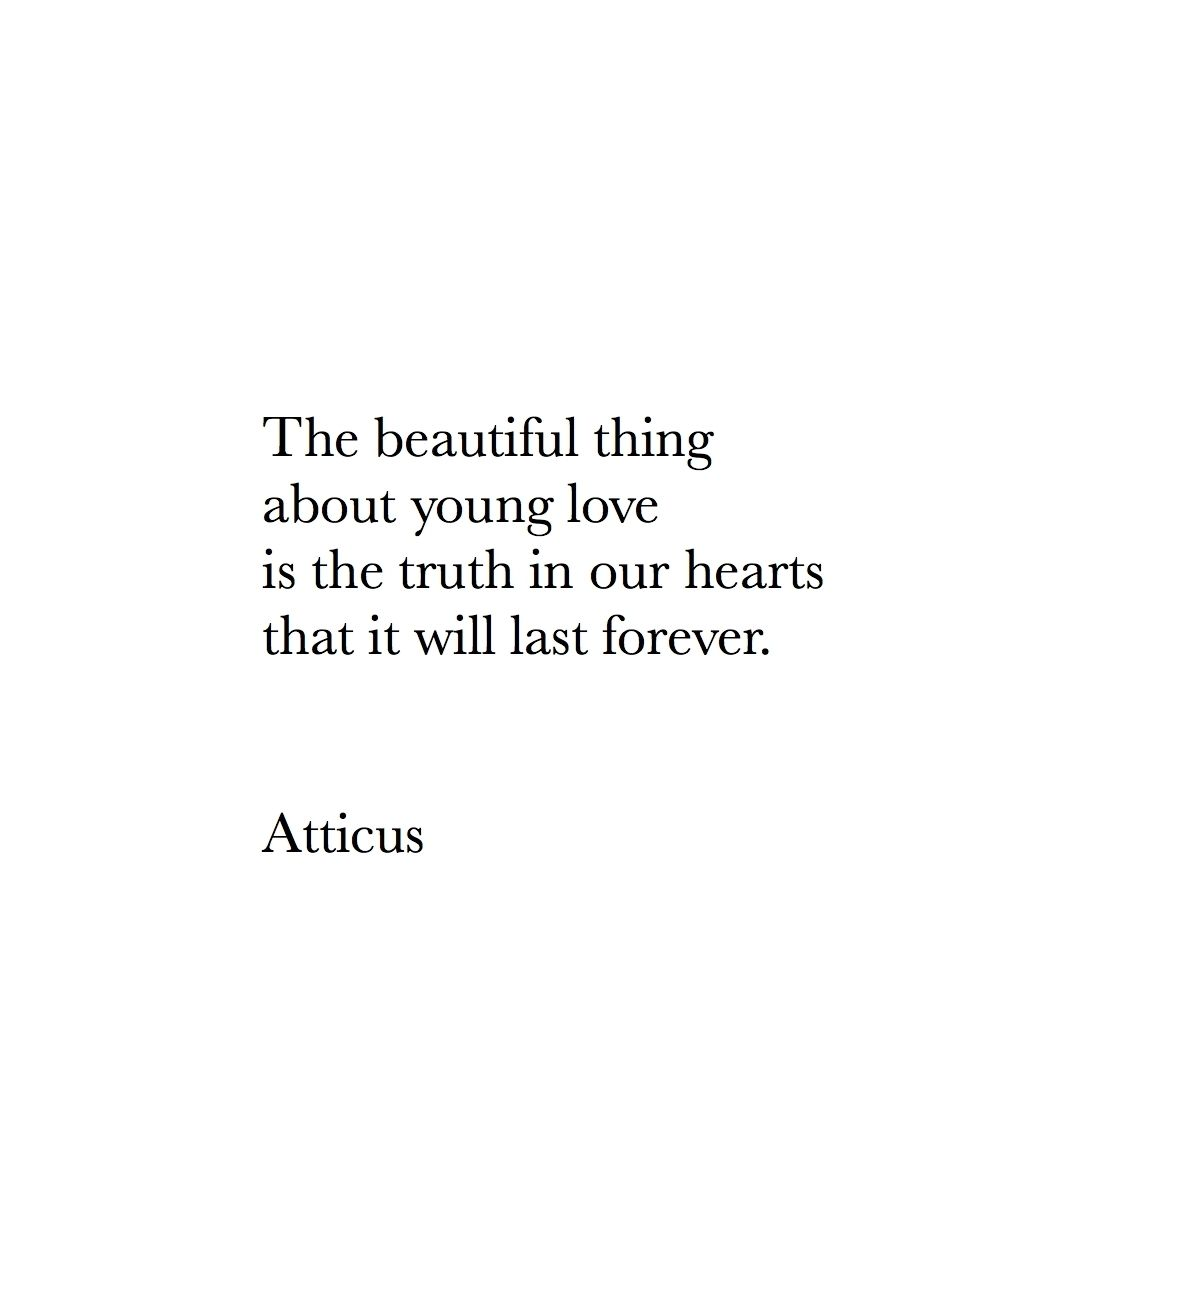 Young Love Quotes Captivating Young Love' #atticuspoetry #atticus #love  Quotes  Pinterest